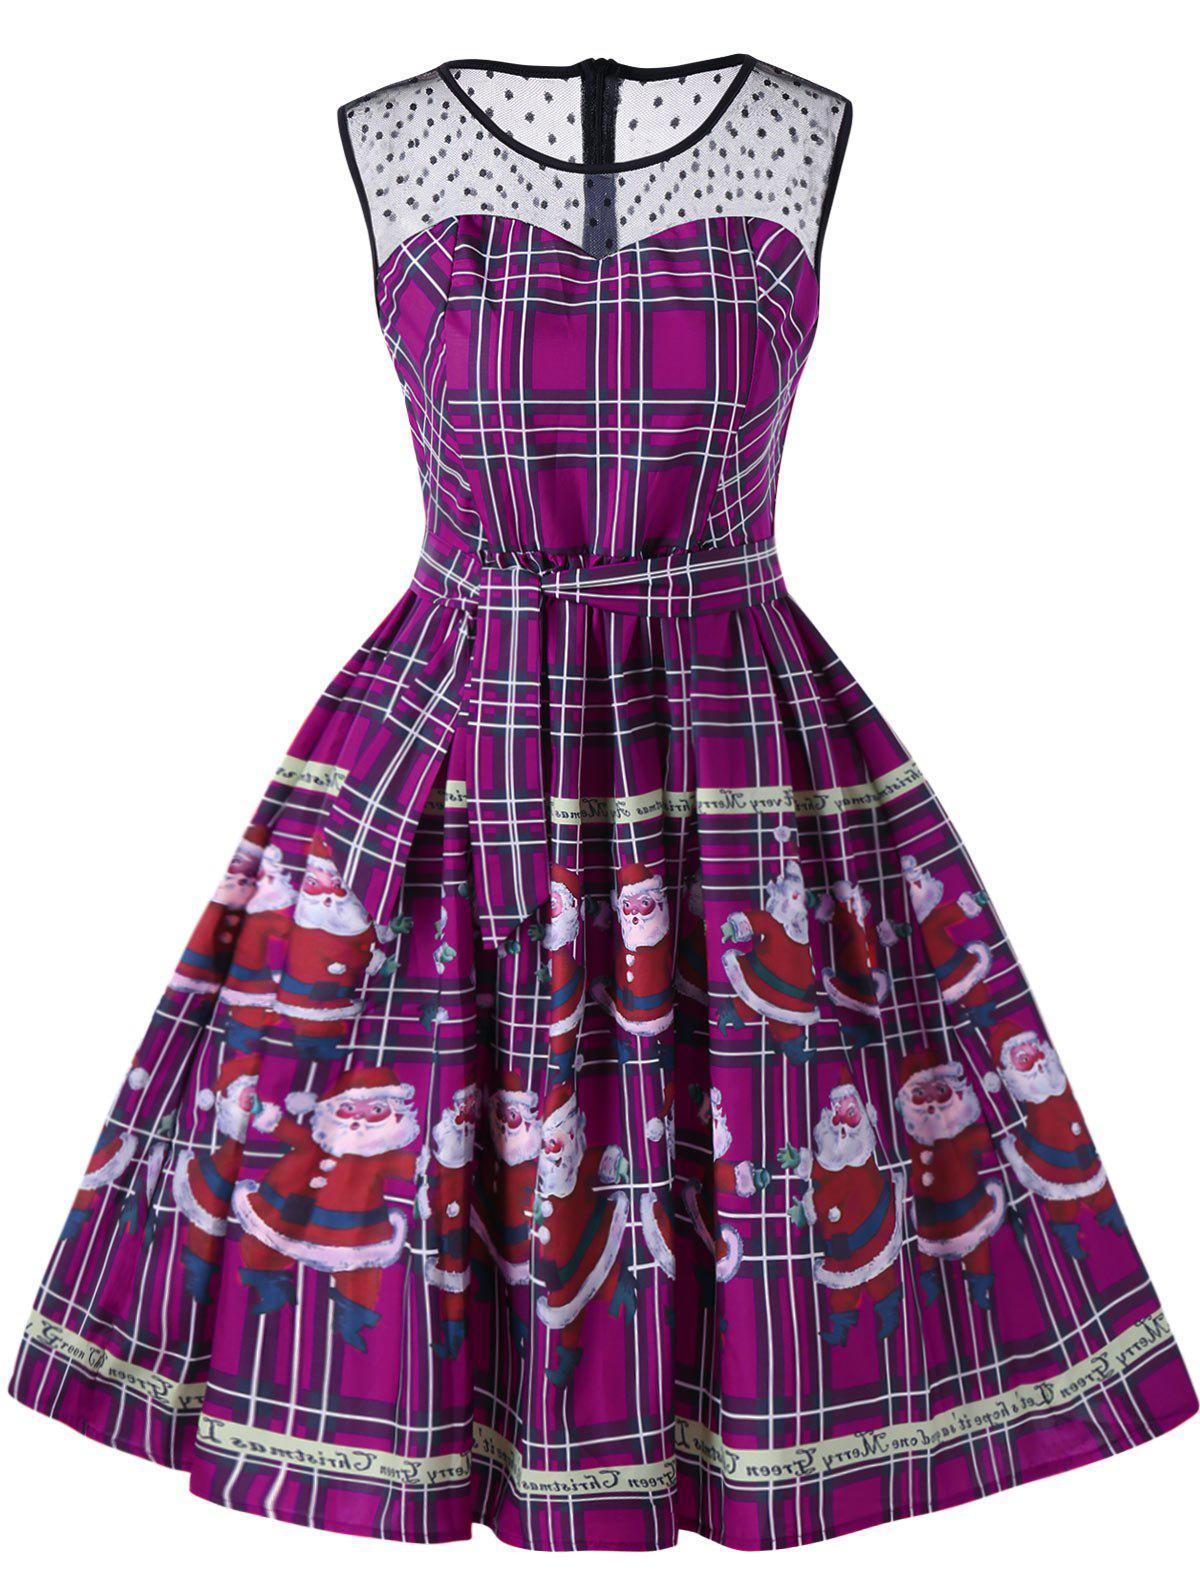 Christmas Santa Claus Plaid Sheer Swing DressWOMEN<br><br>Size: 2XL; Color: PURPLE; Style: Vintage; Material: Polyester; Silhouette: A-Line; Dresses Length: Knee-Length; Neckline: Round Collar; Sleeve Length: Sleeveless; Pattern Type: Character,Plaid; With Belt: No; Season: Fall,Spring,Summer; Weight: 0.2300kg; Package Contents: 1 x Dress;